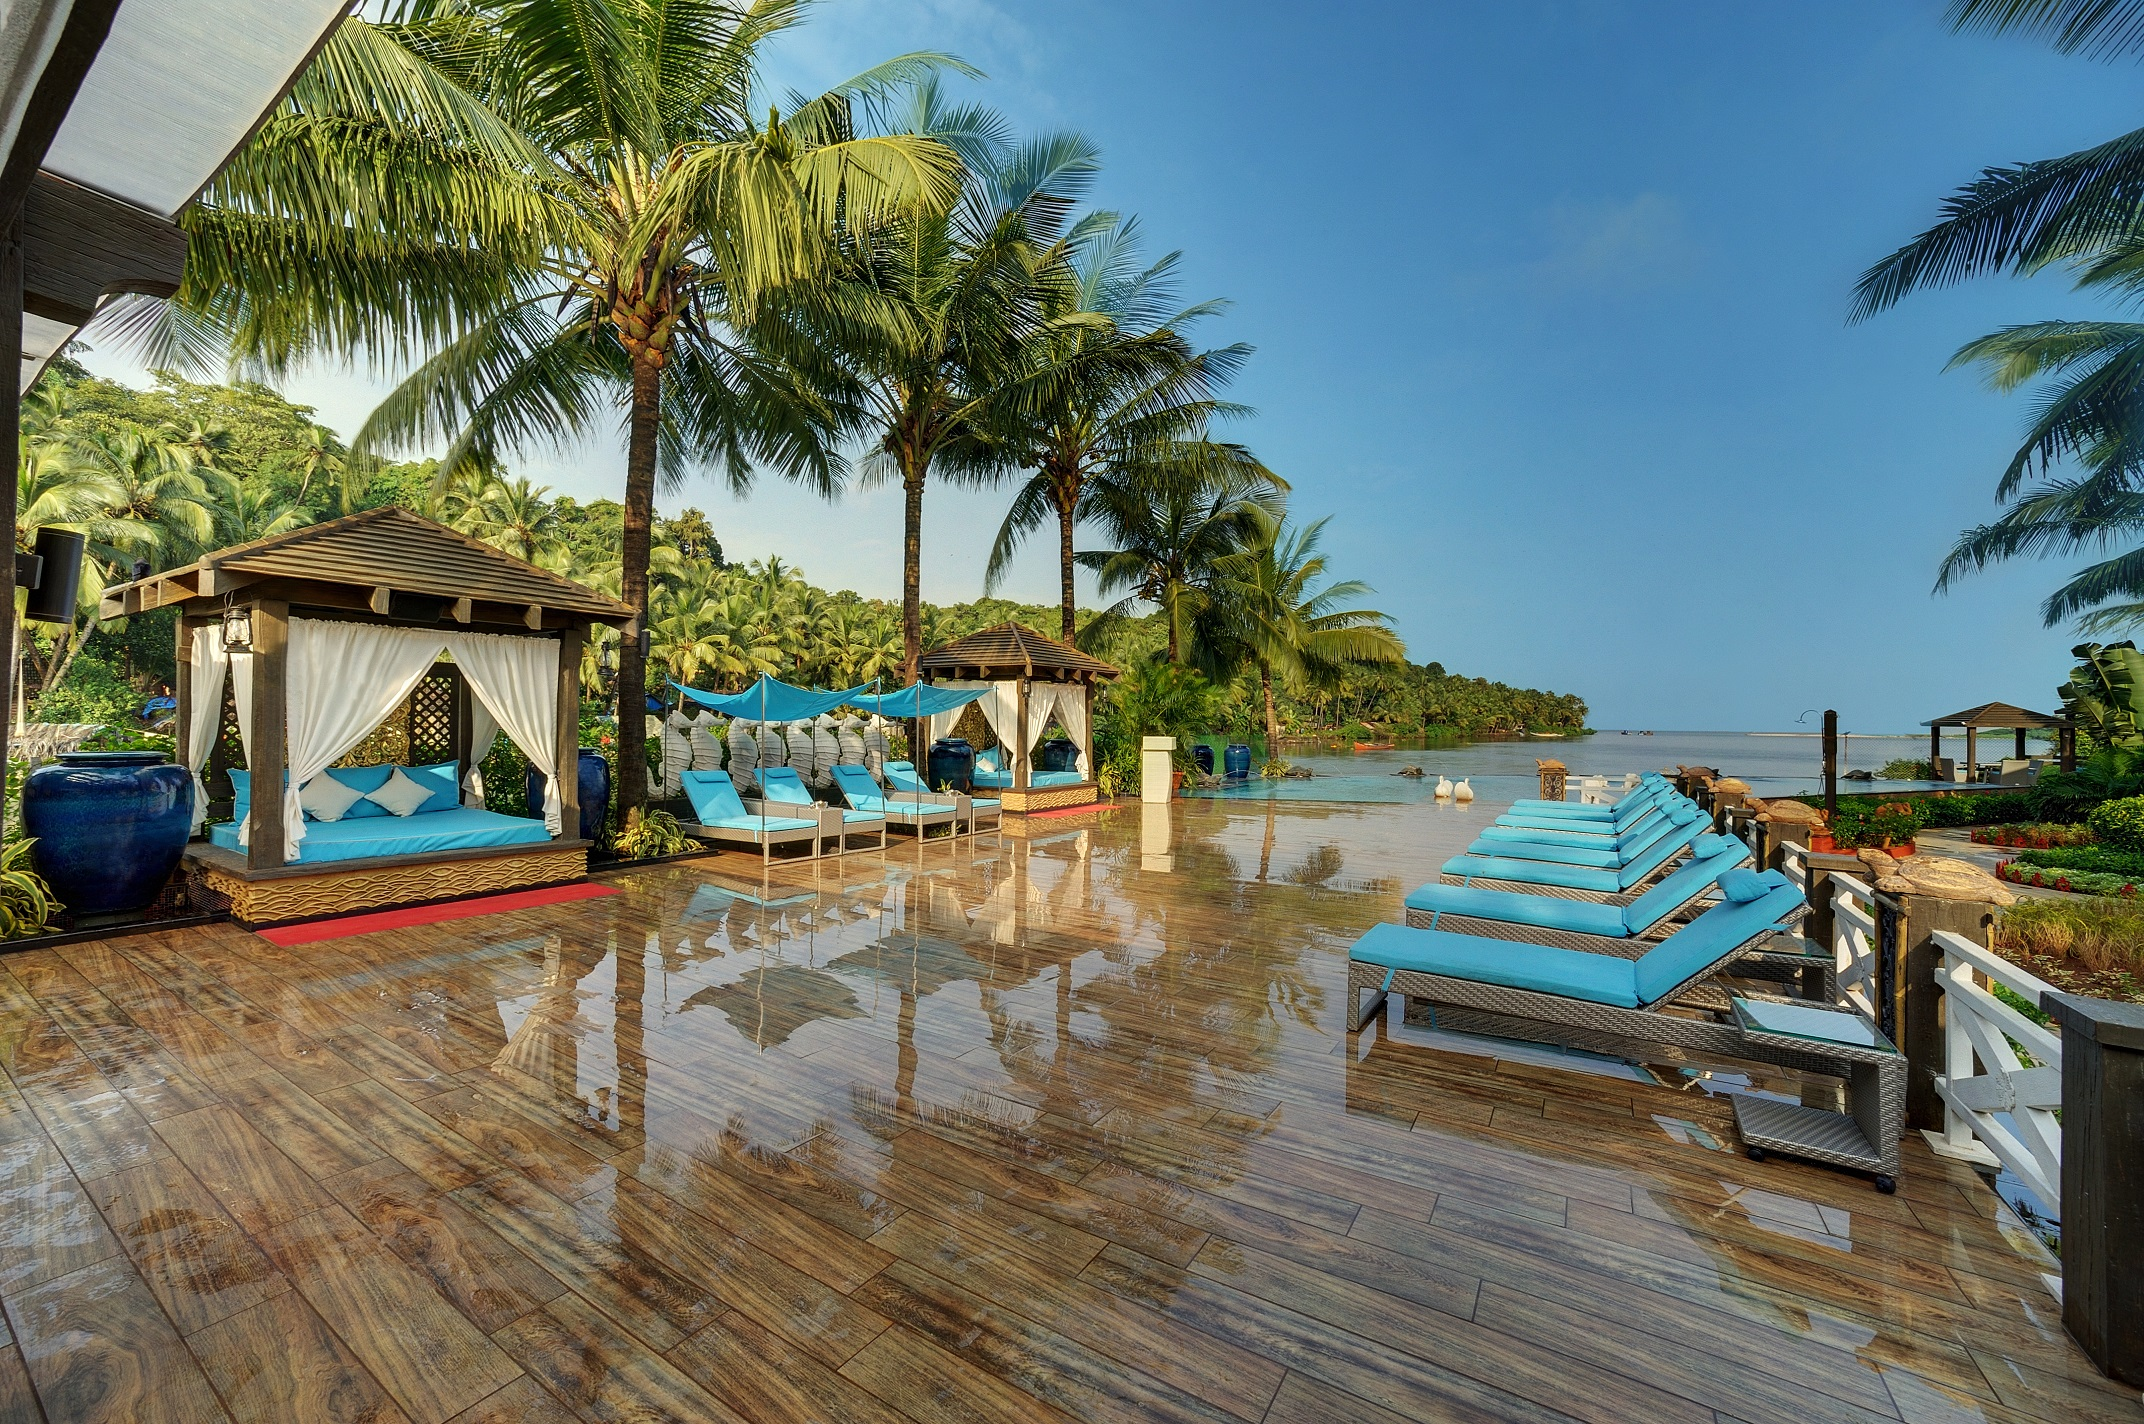 Beach hotels resorts in india for Luxury beach hotels